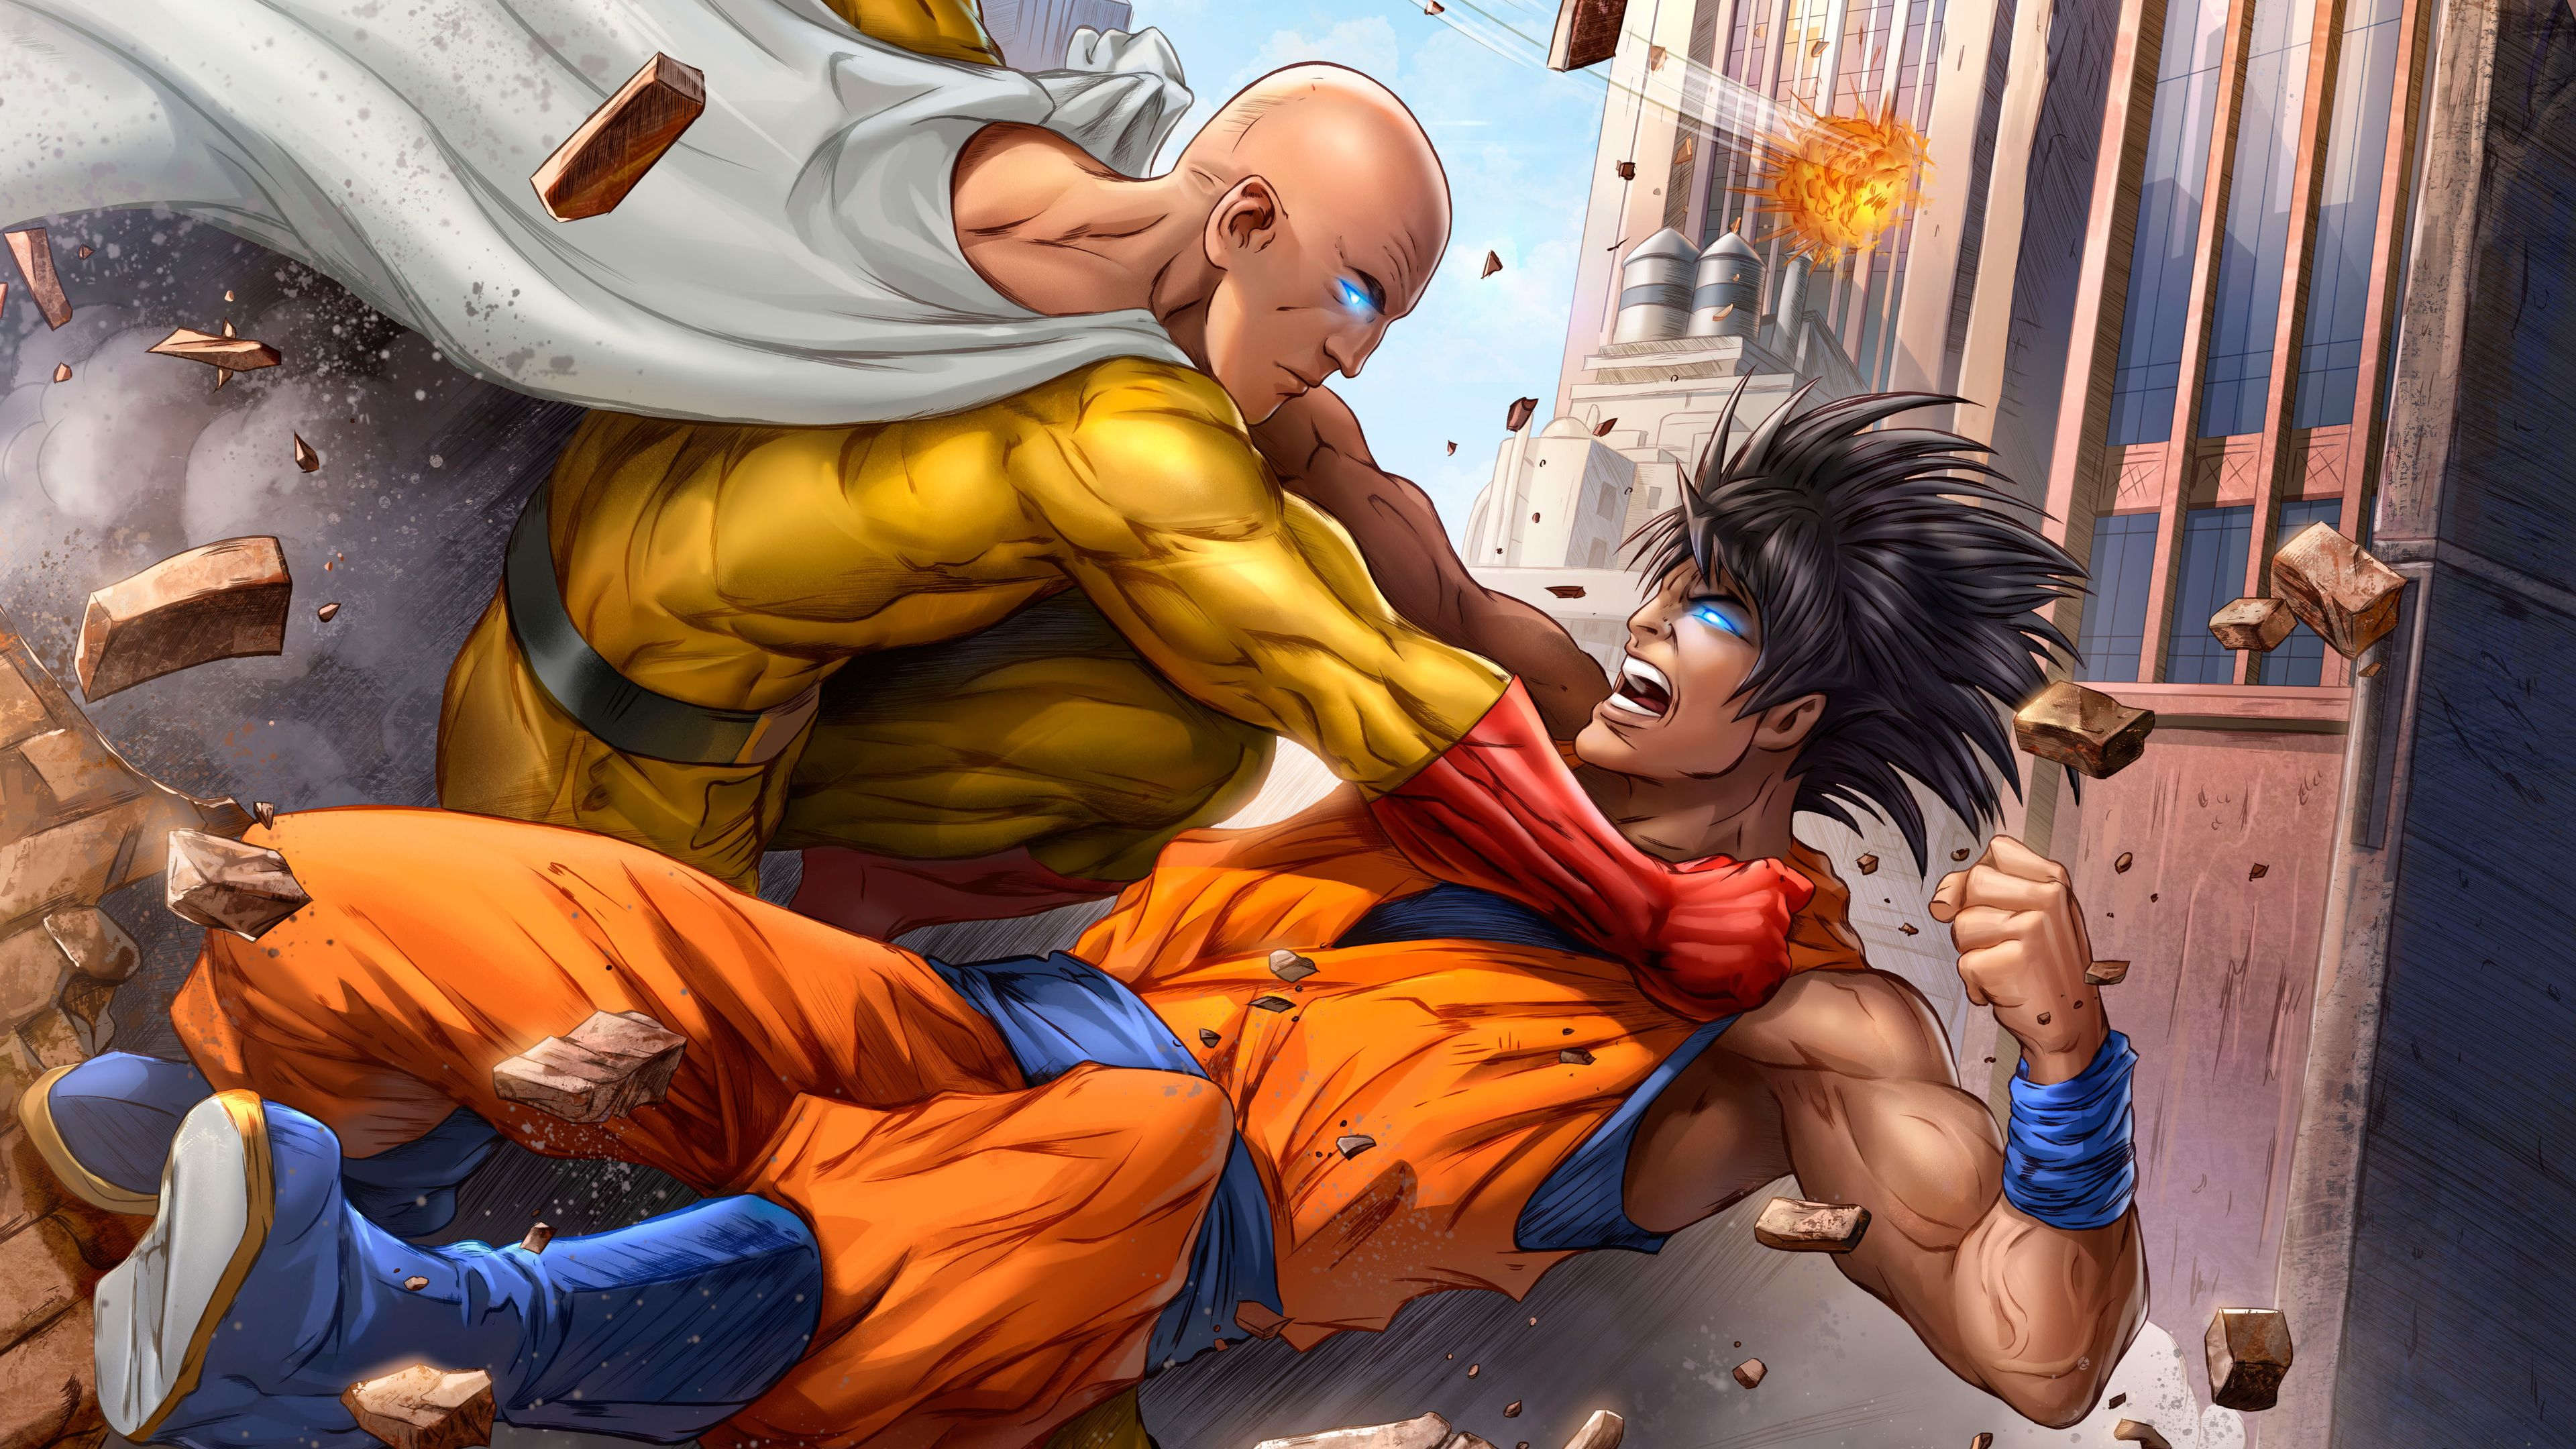 Goku And One Punch Man 5k Art superheroes wallpapers, one